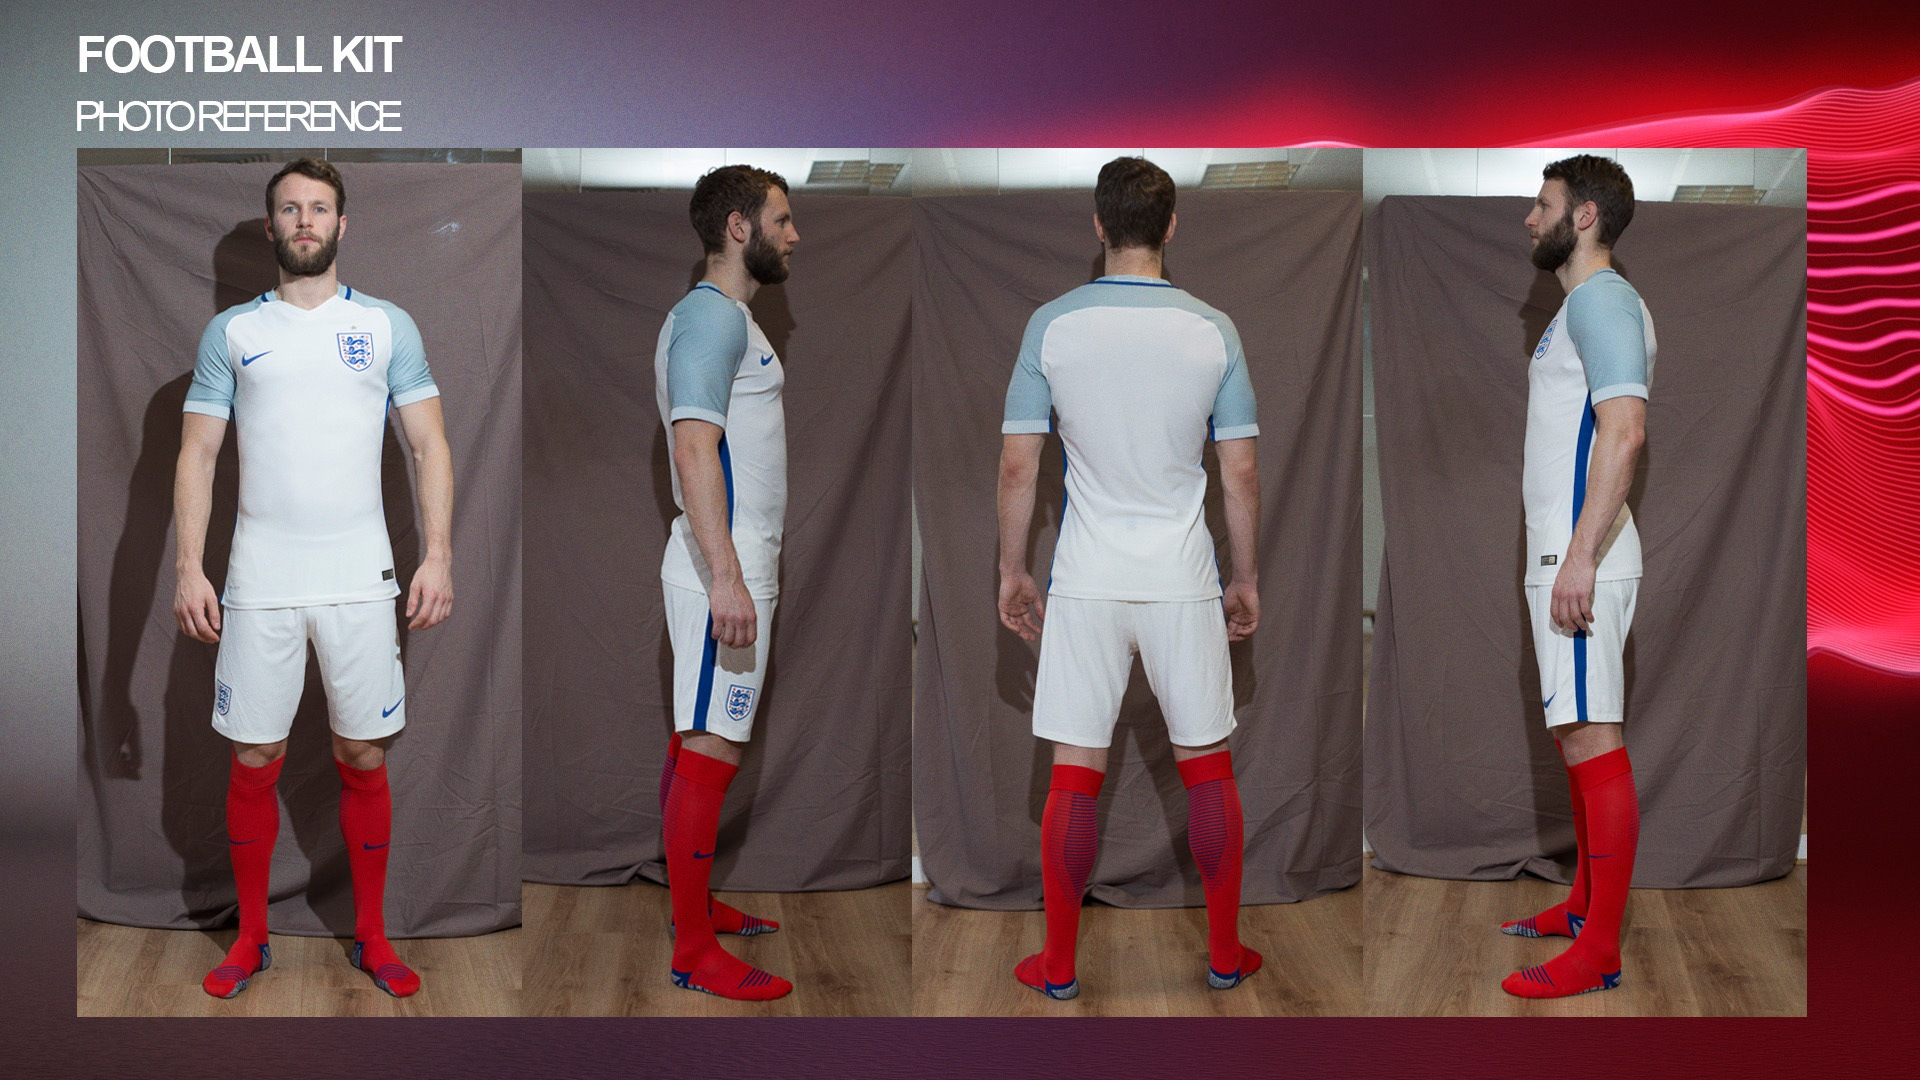 nike england football kit 2016 photo reference